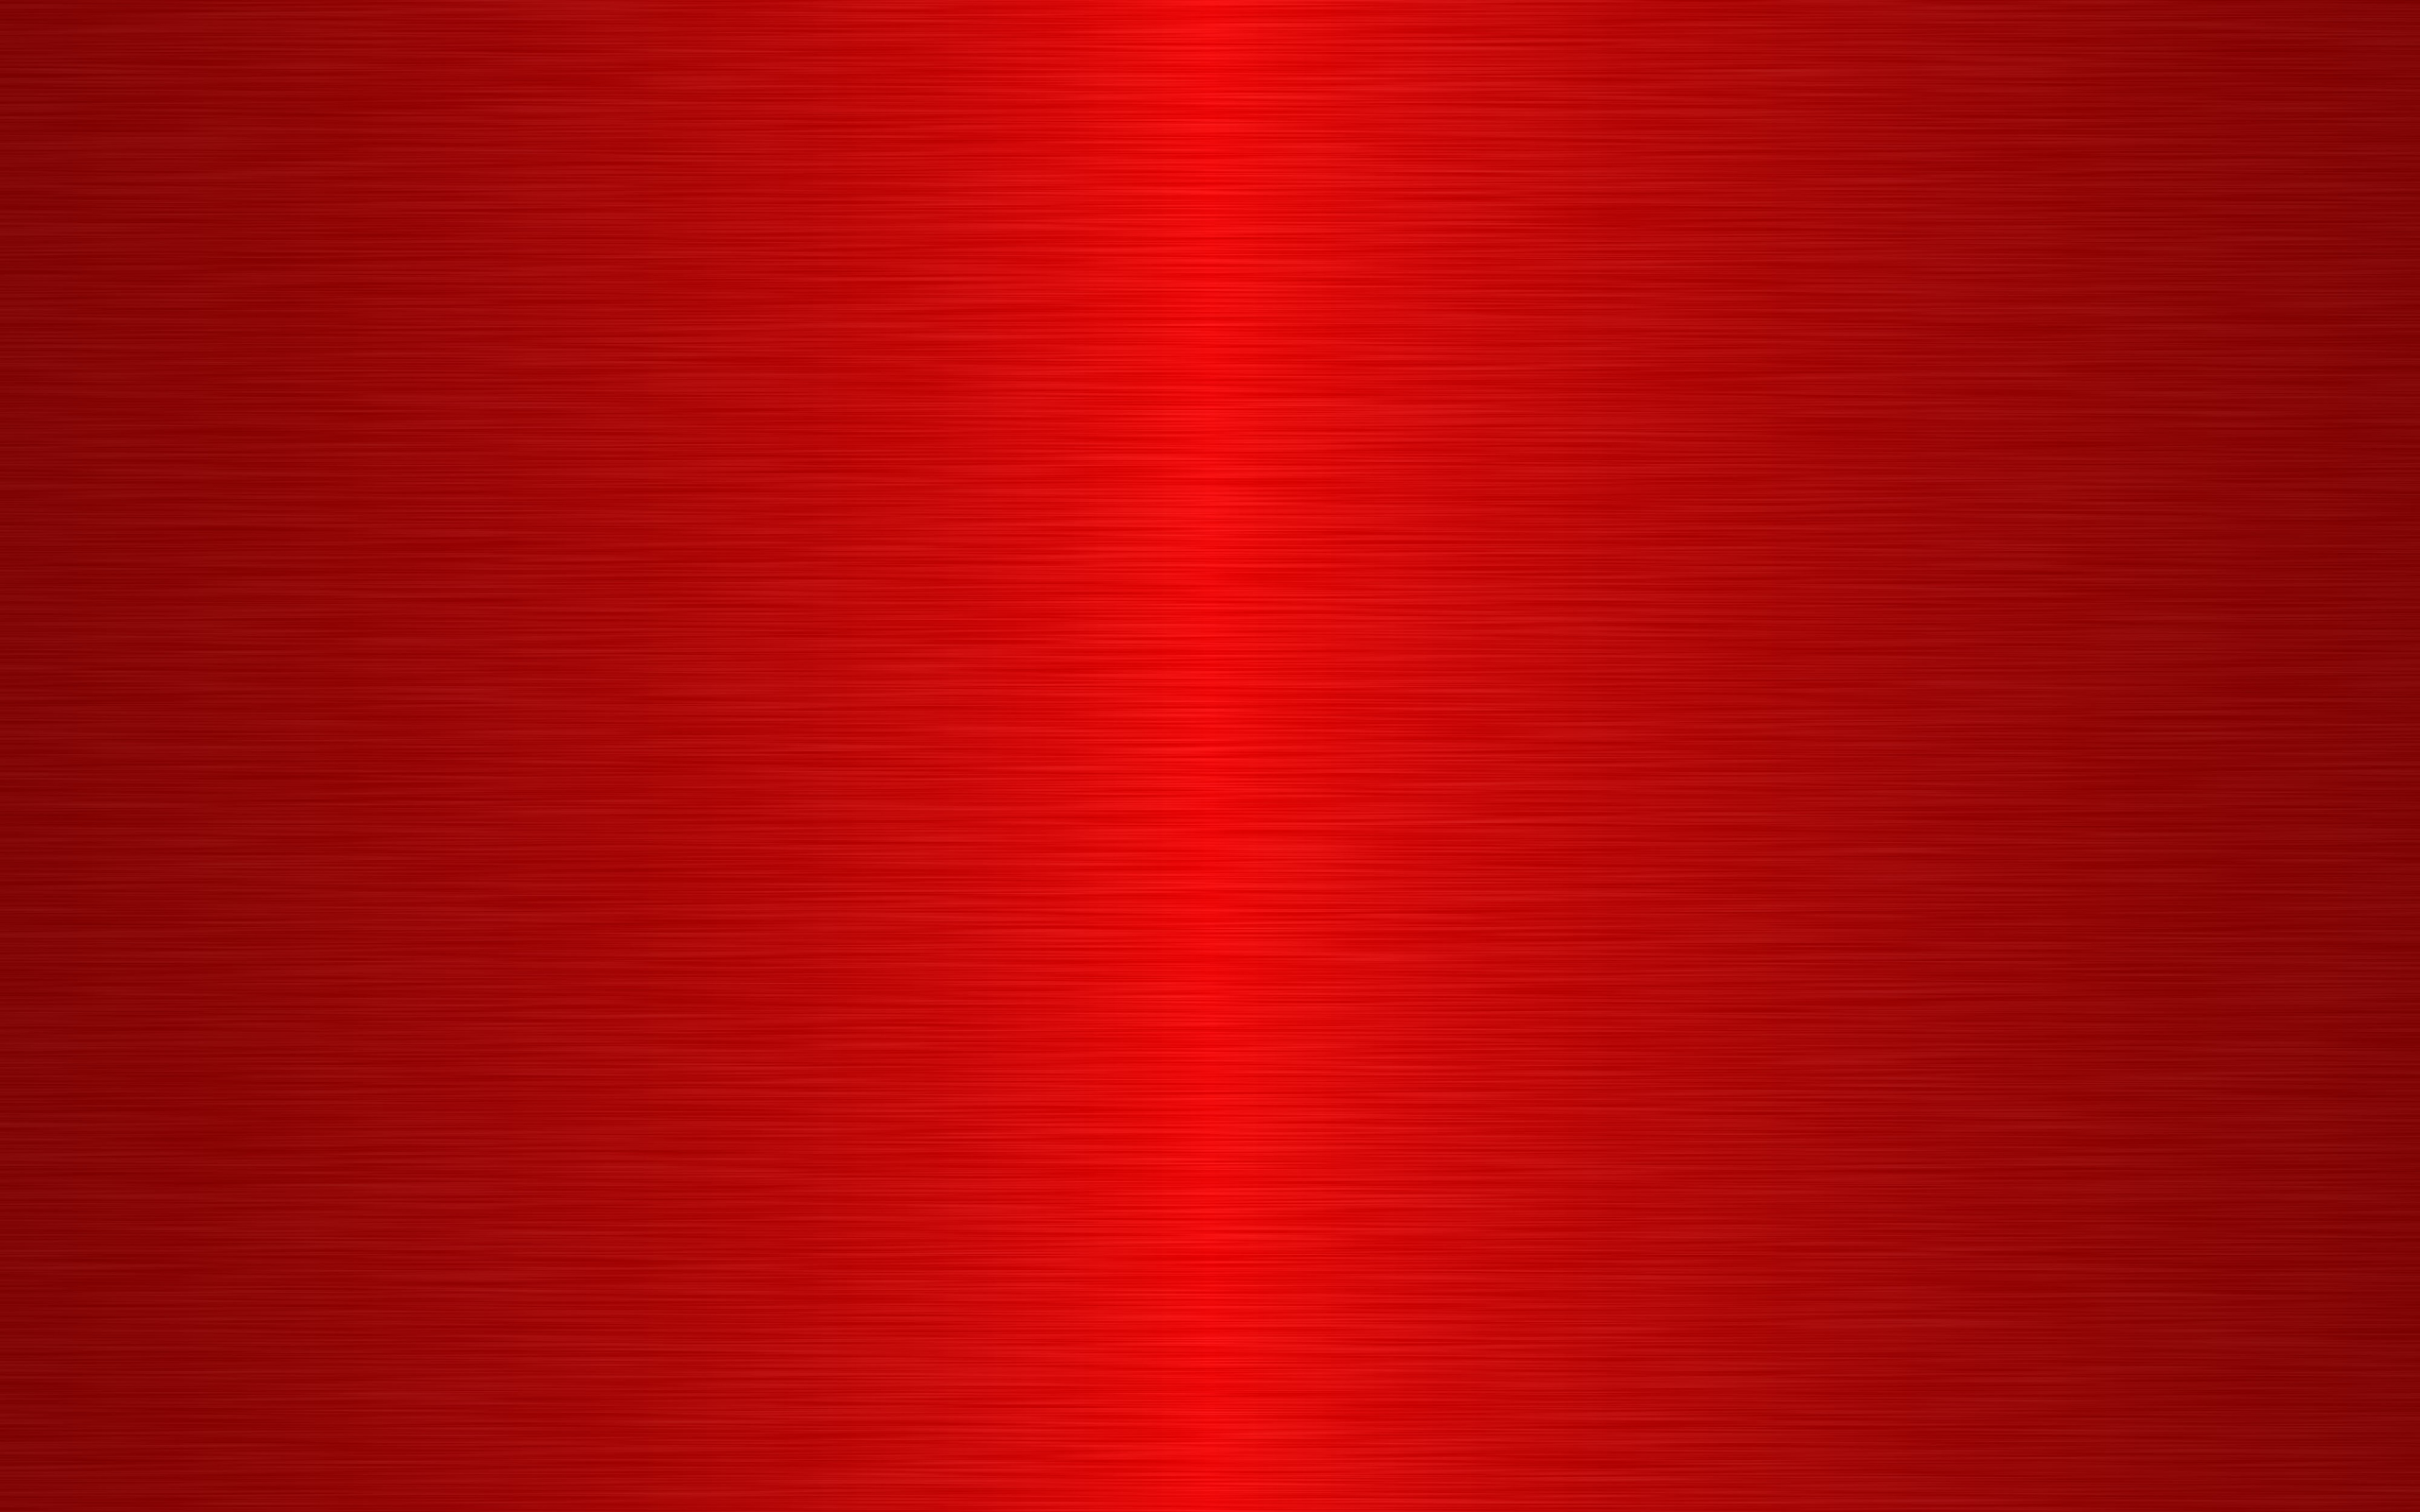 2560x1600 Simple Red Texture Pattern 2560x1600 Resolution